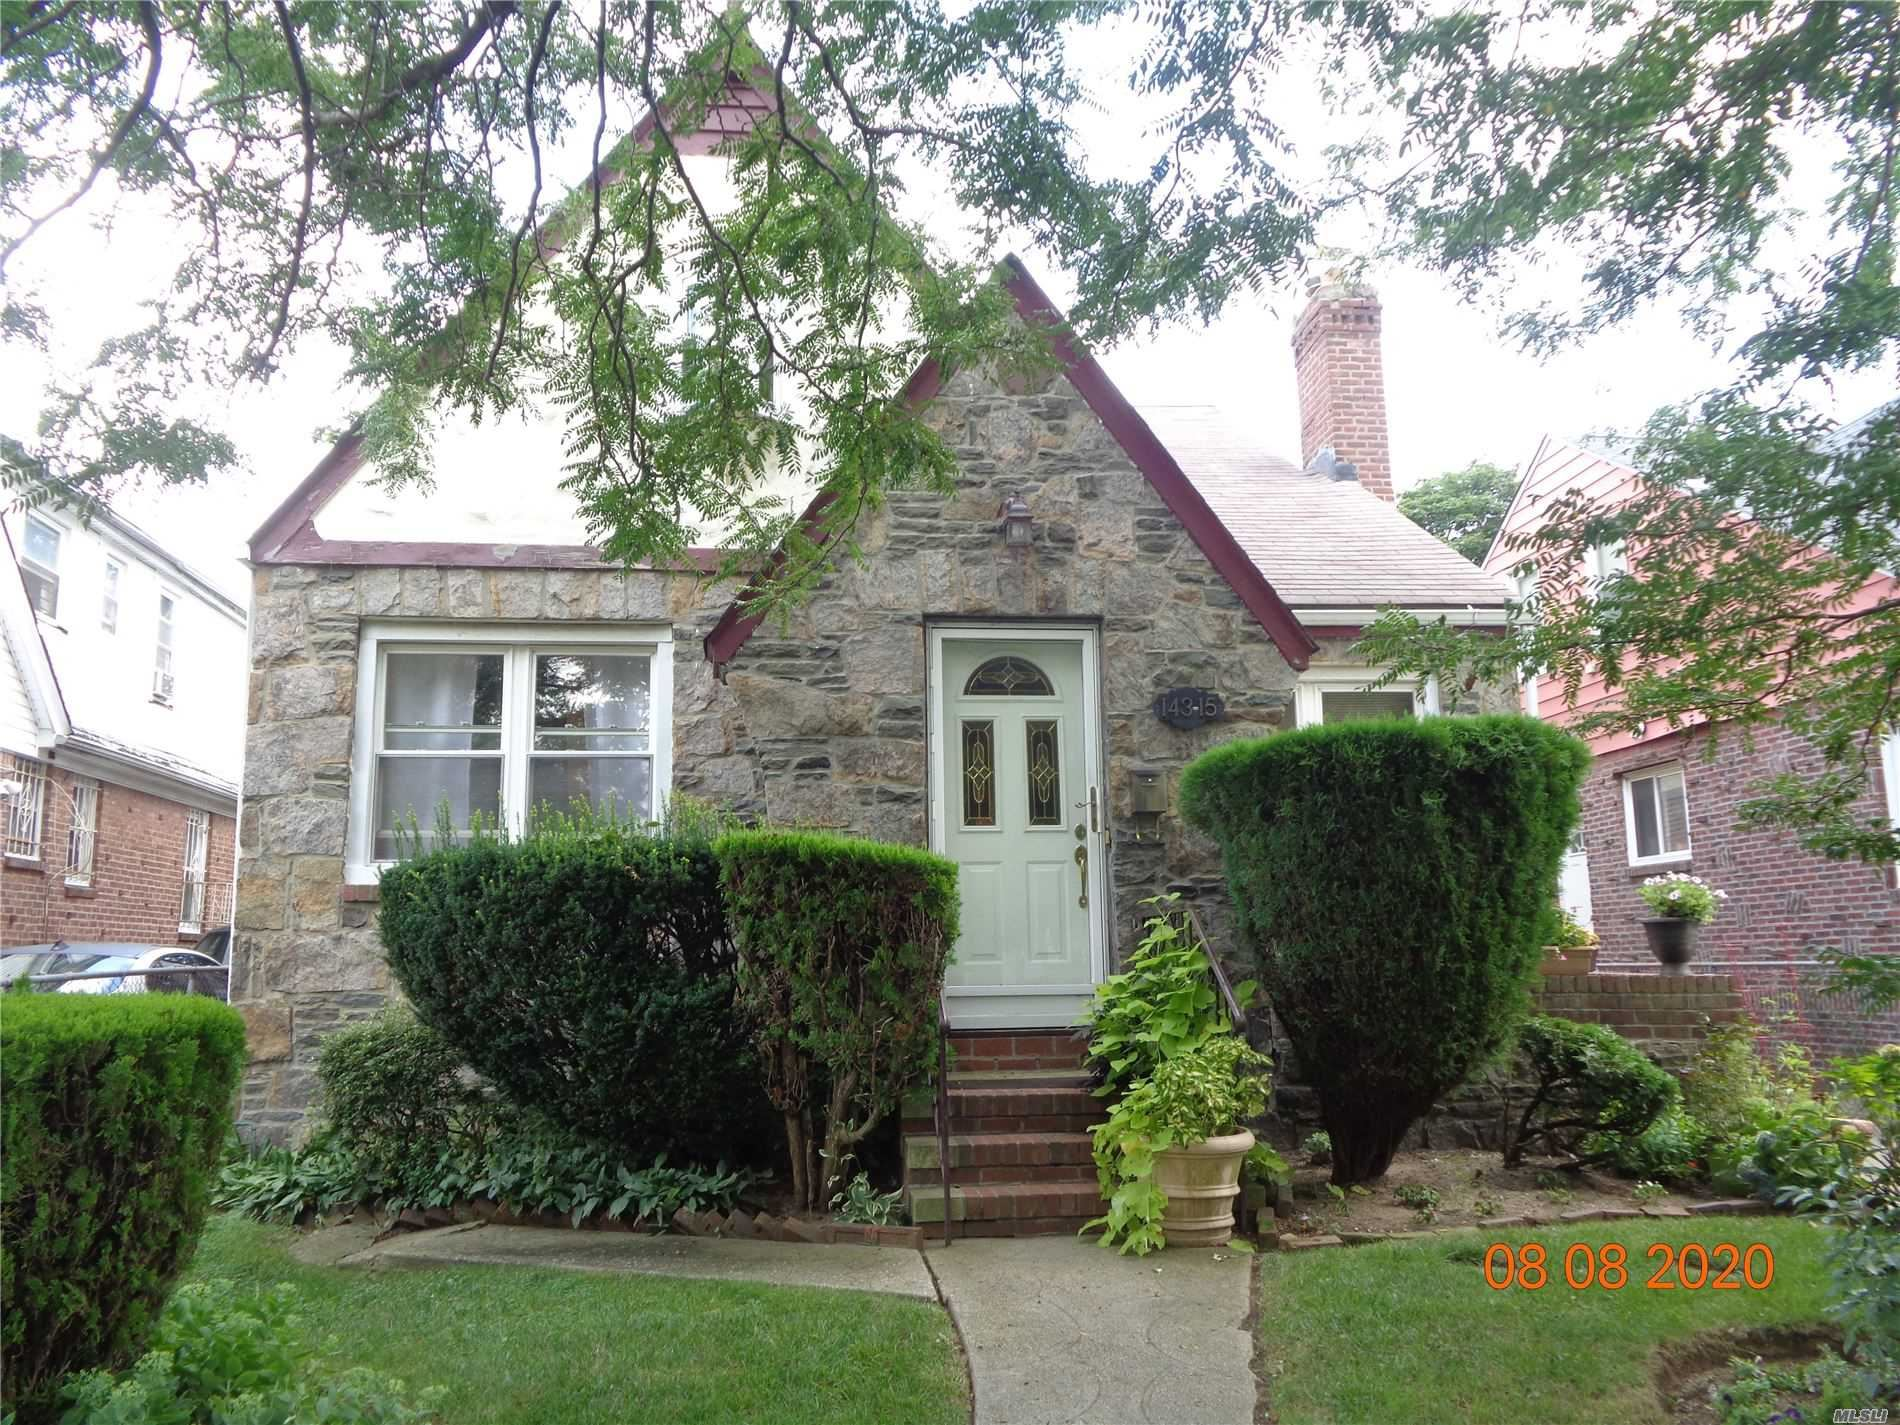 143-15 182nd Place, Springfield Gardens, NY 11413 - MLS#: 3241579